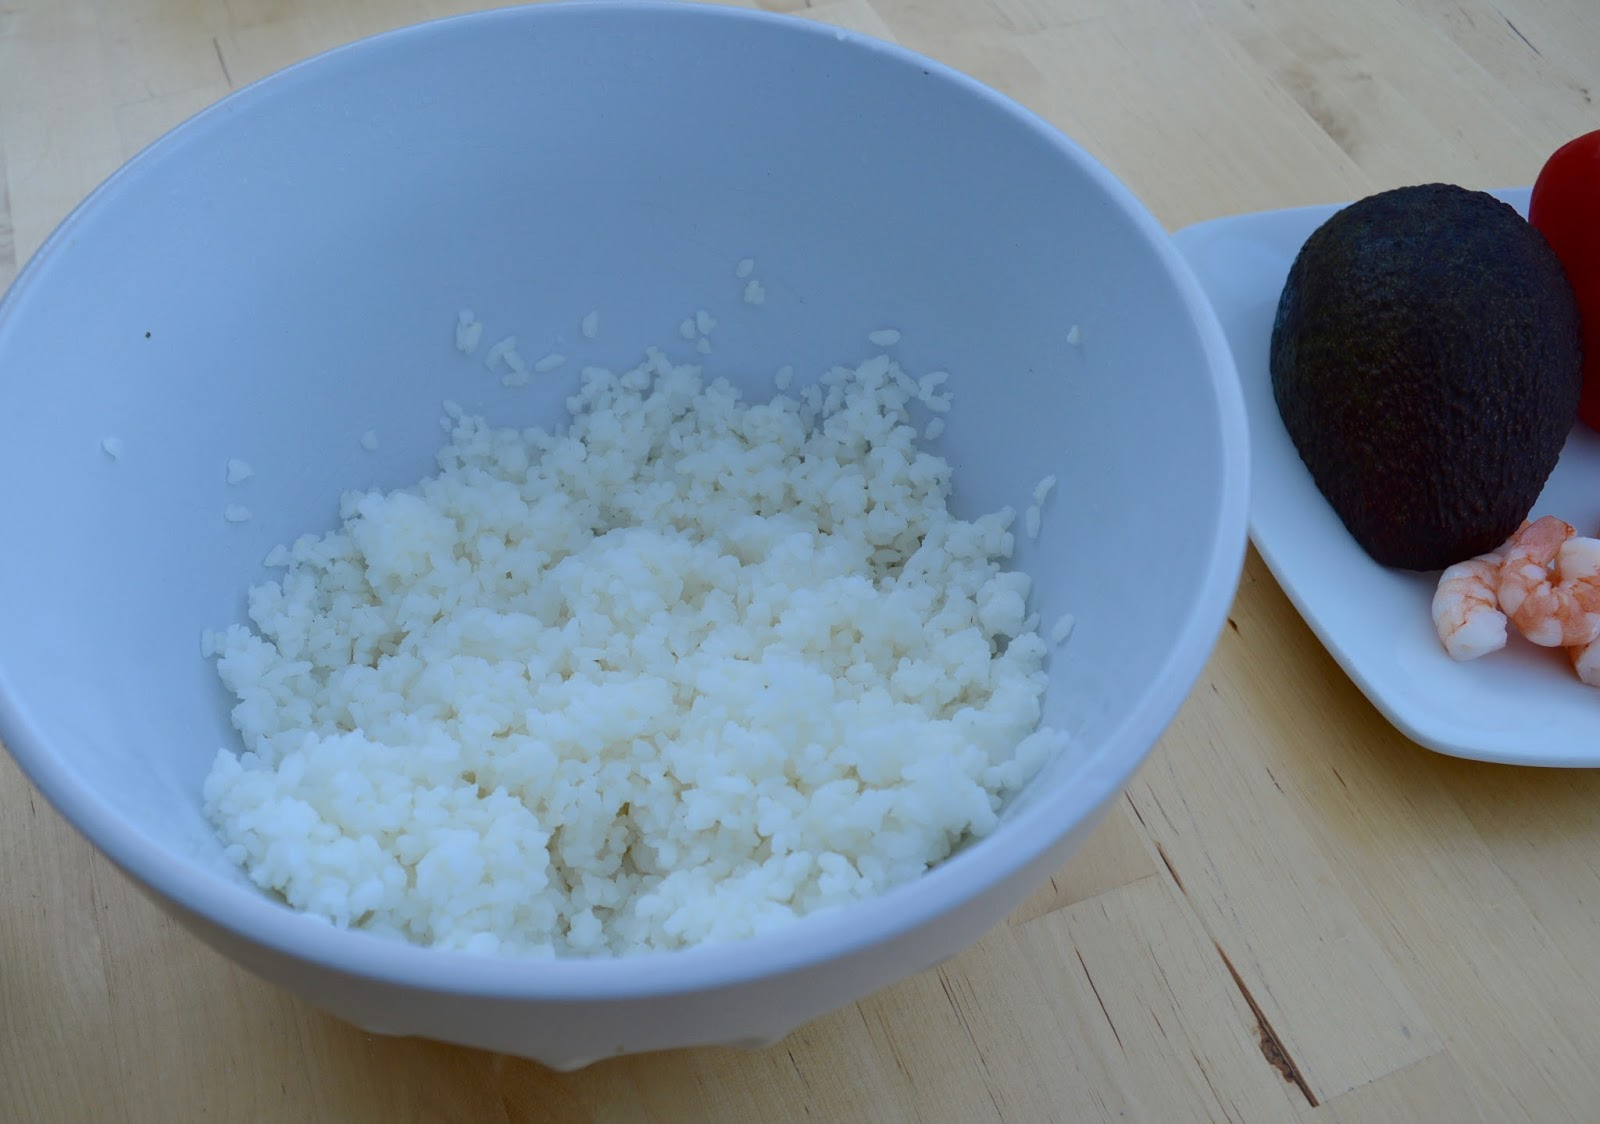 Sushi Making With Kids - A Tutorial for Beginners with Yutaka - prepared sushi rice